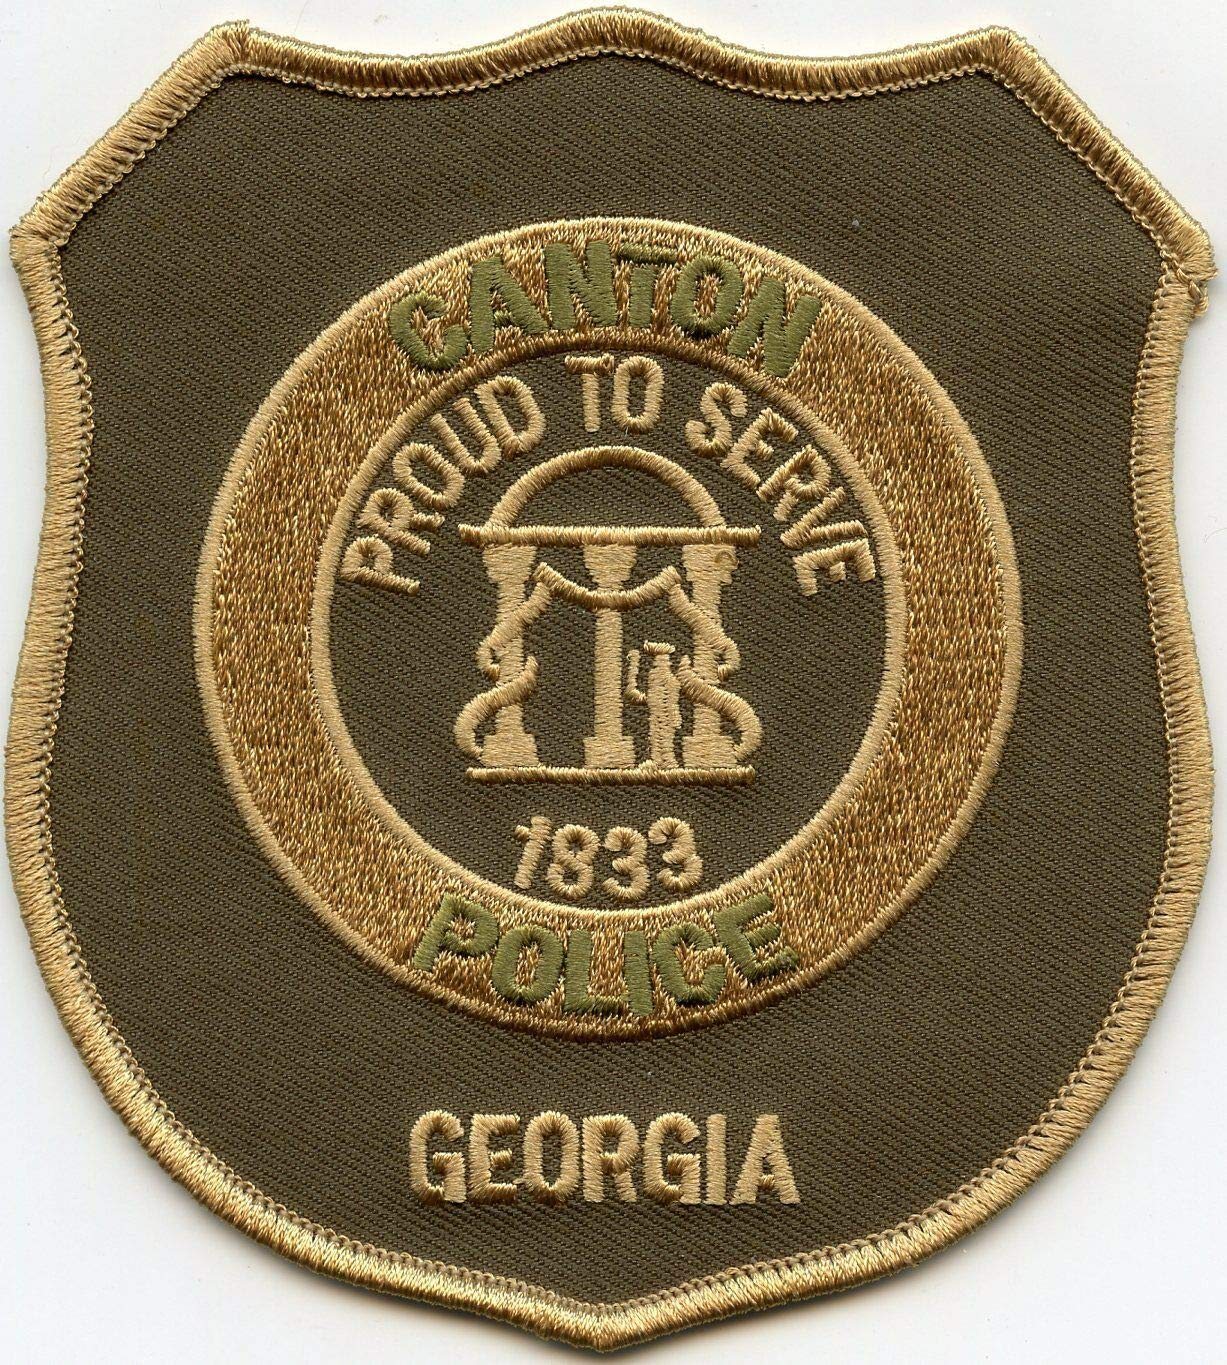 Embroidered Patch - Patches for Women Man - Canton Georgia GA Proud to Serve Police by Patcherer